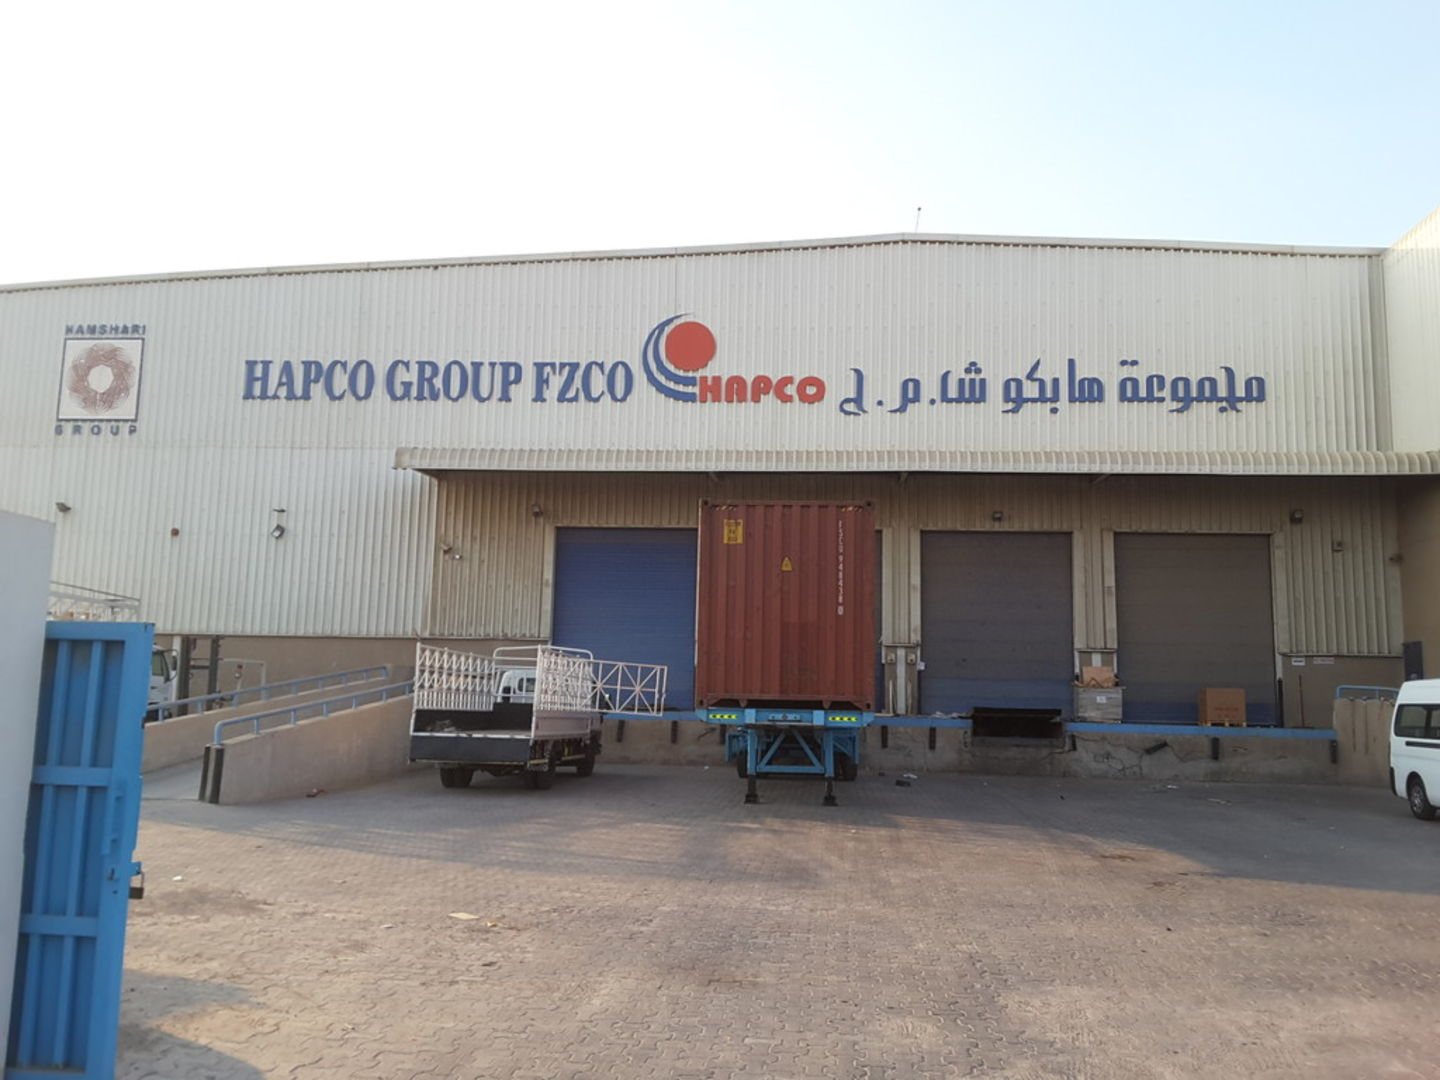 HiDubai-business-hapco-group-b2b-services-distributors-wholesalers-jebel-ali-free-zone-mena-jebel-ali-dubai-2